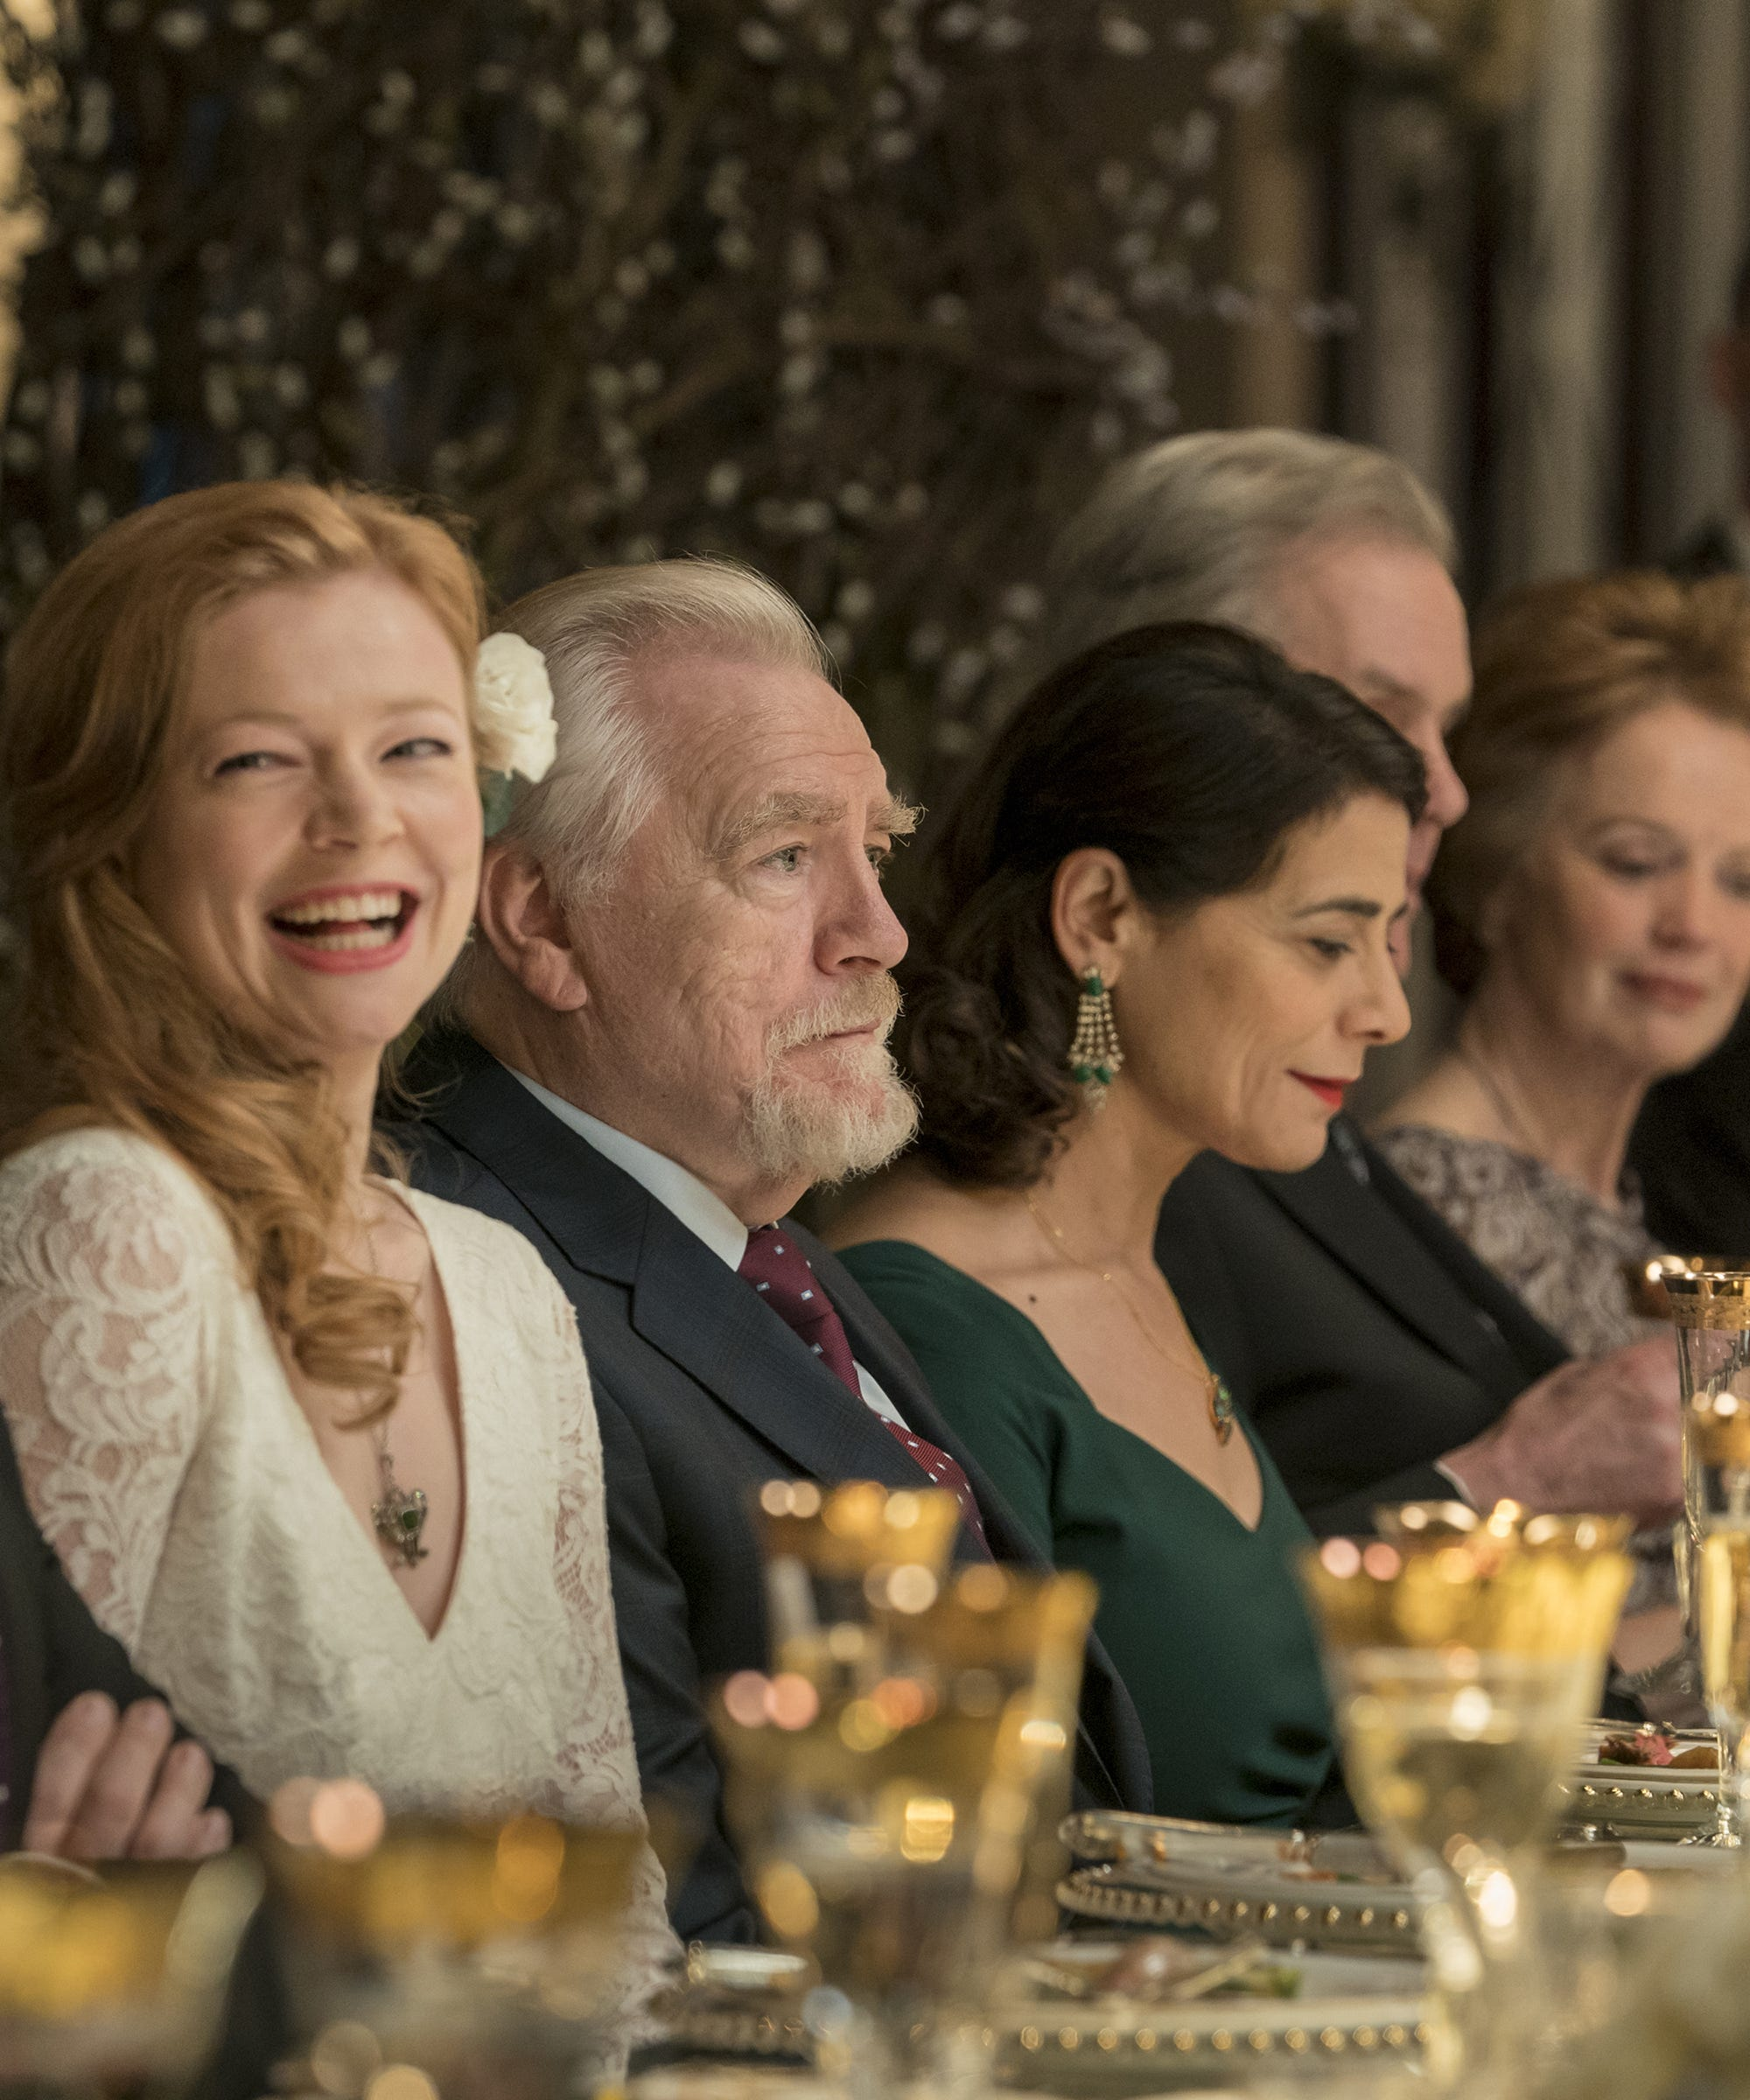 Where We Left Off With Succession Ending, S2 Primer